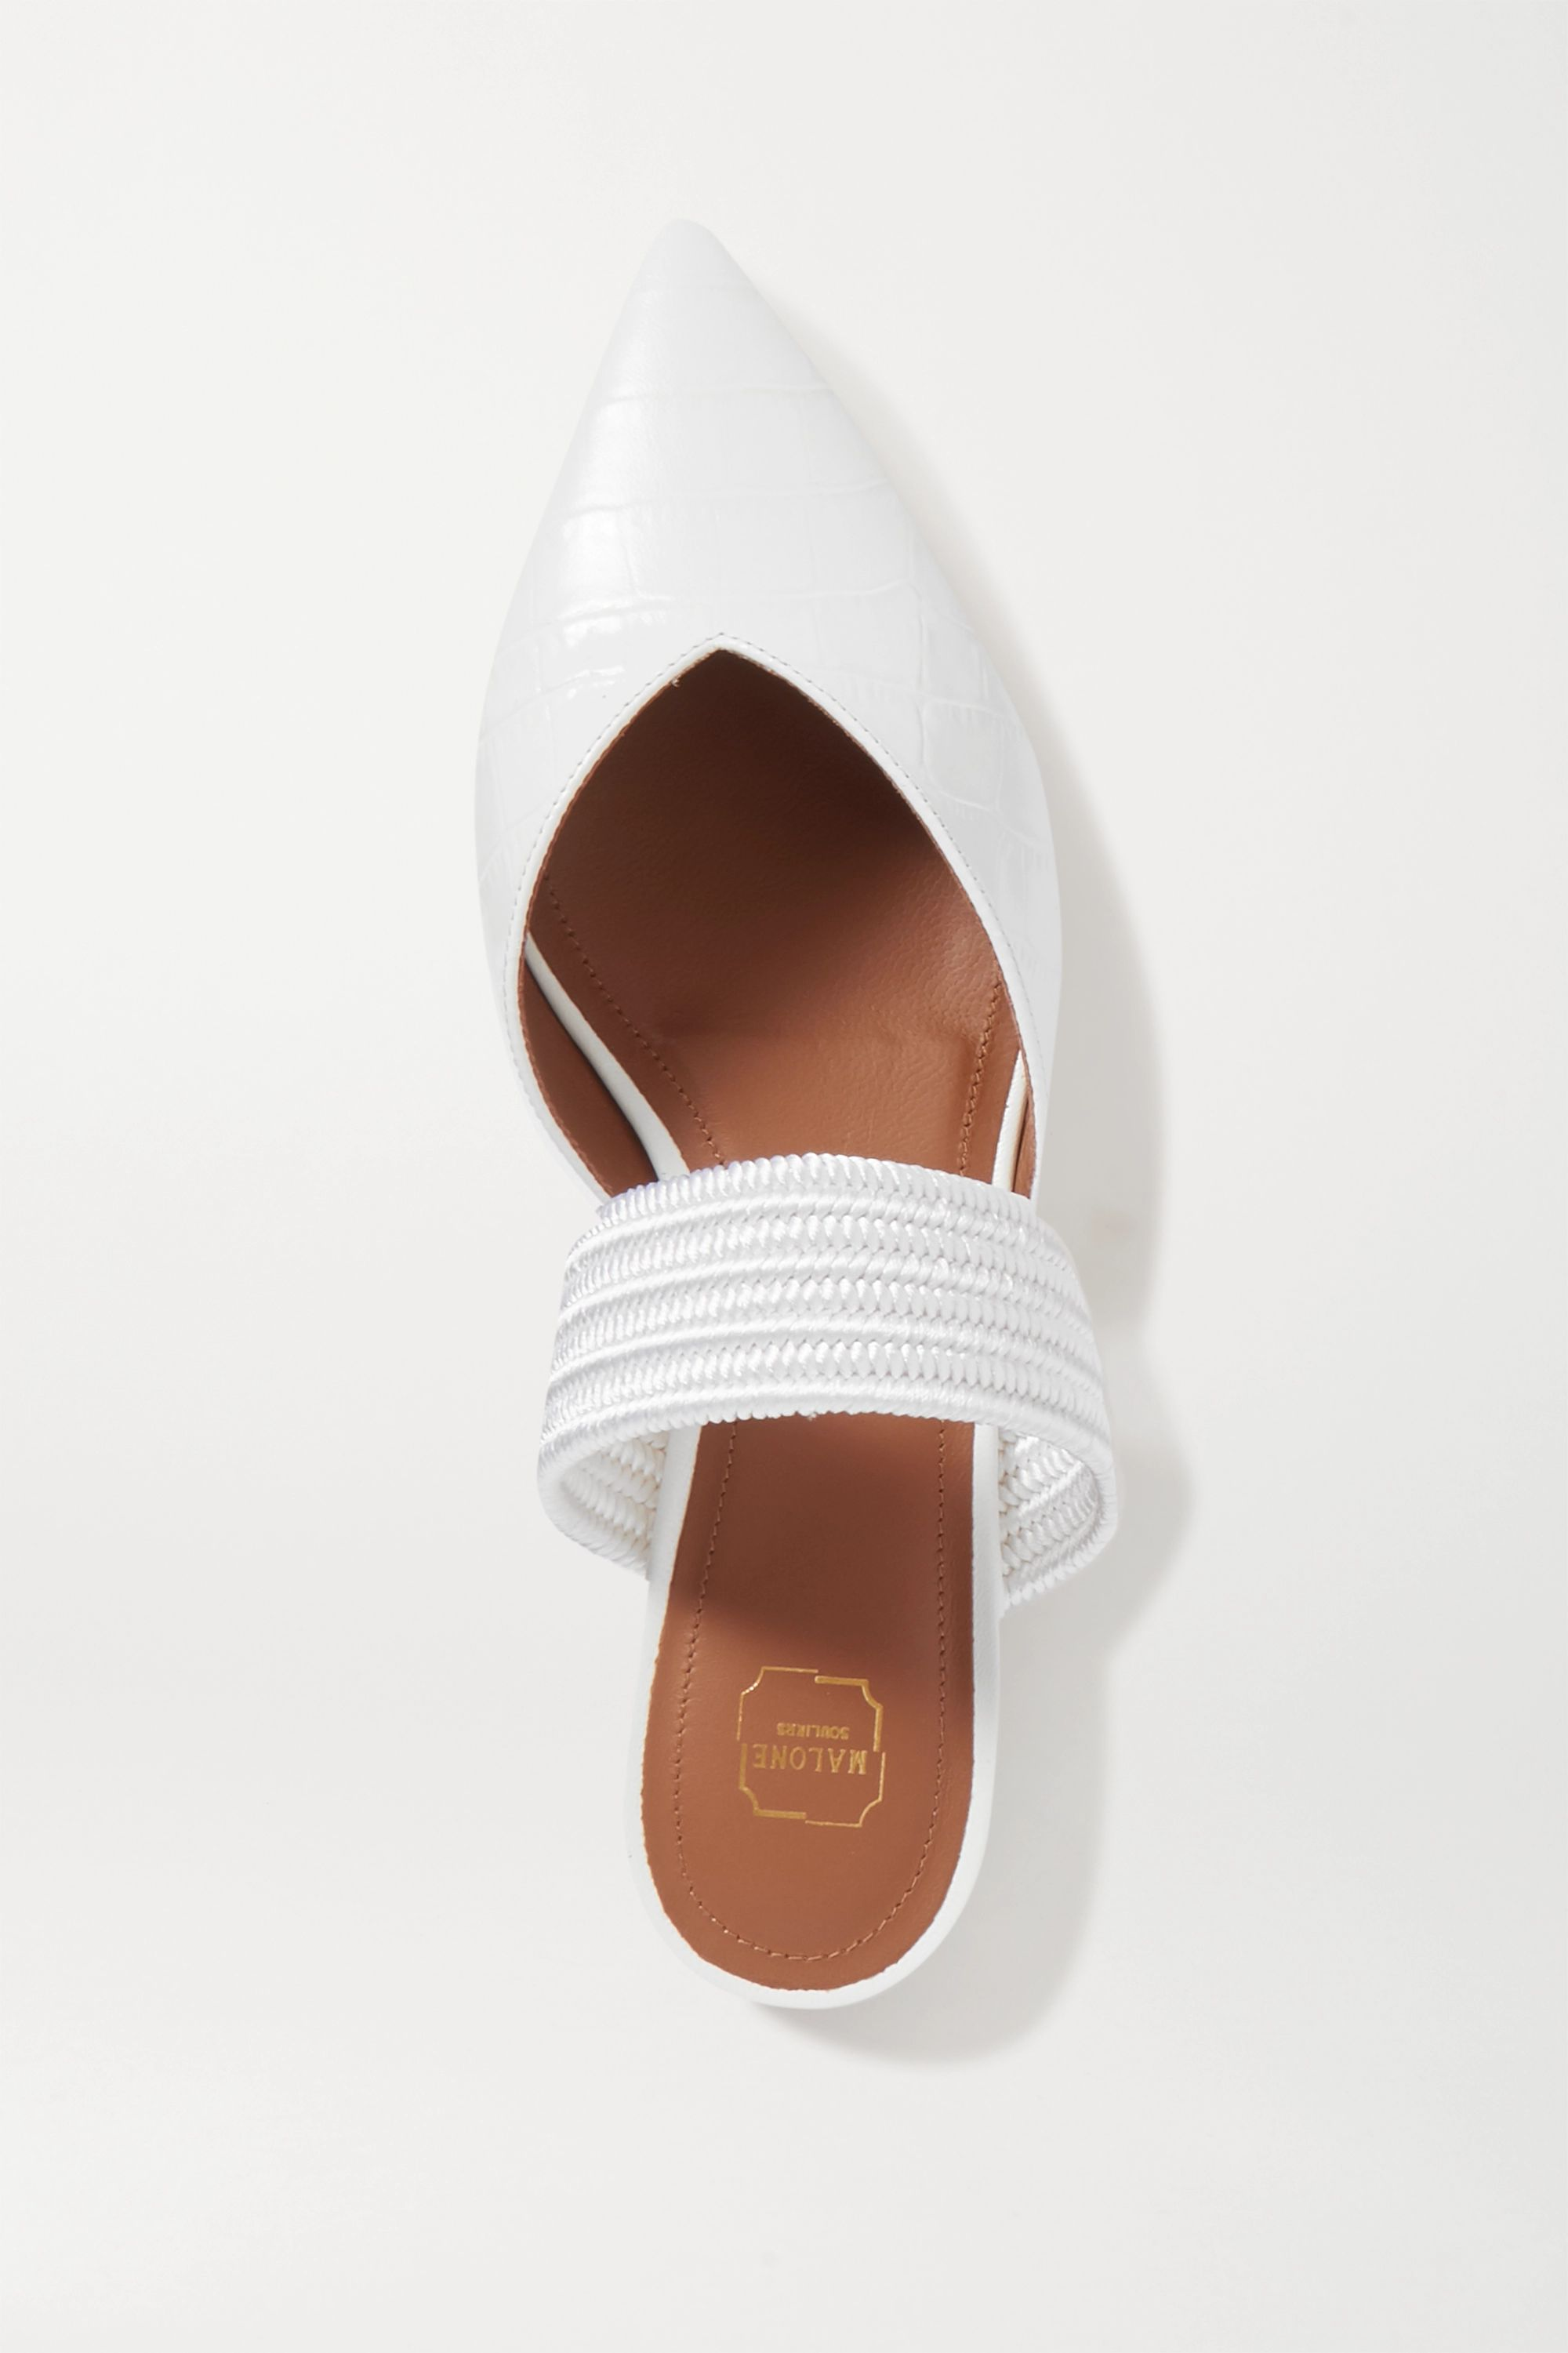 Malone Souliers Maisie cord-trimmed croc-effect leather point-toe flats